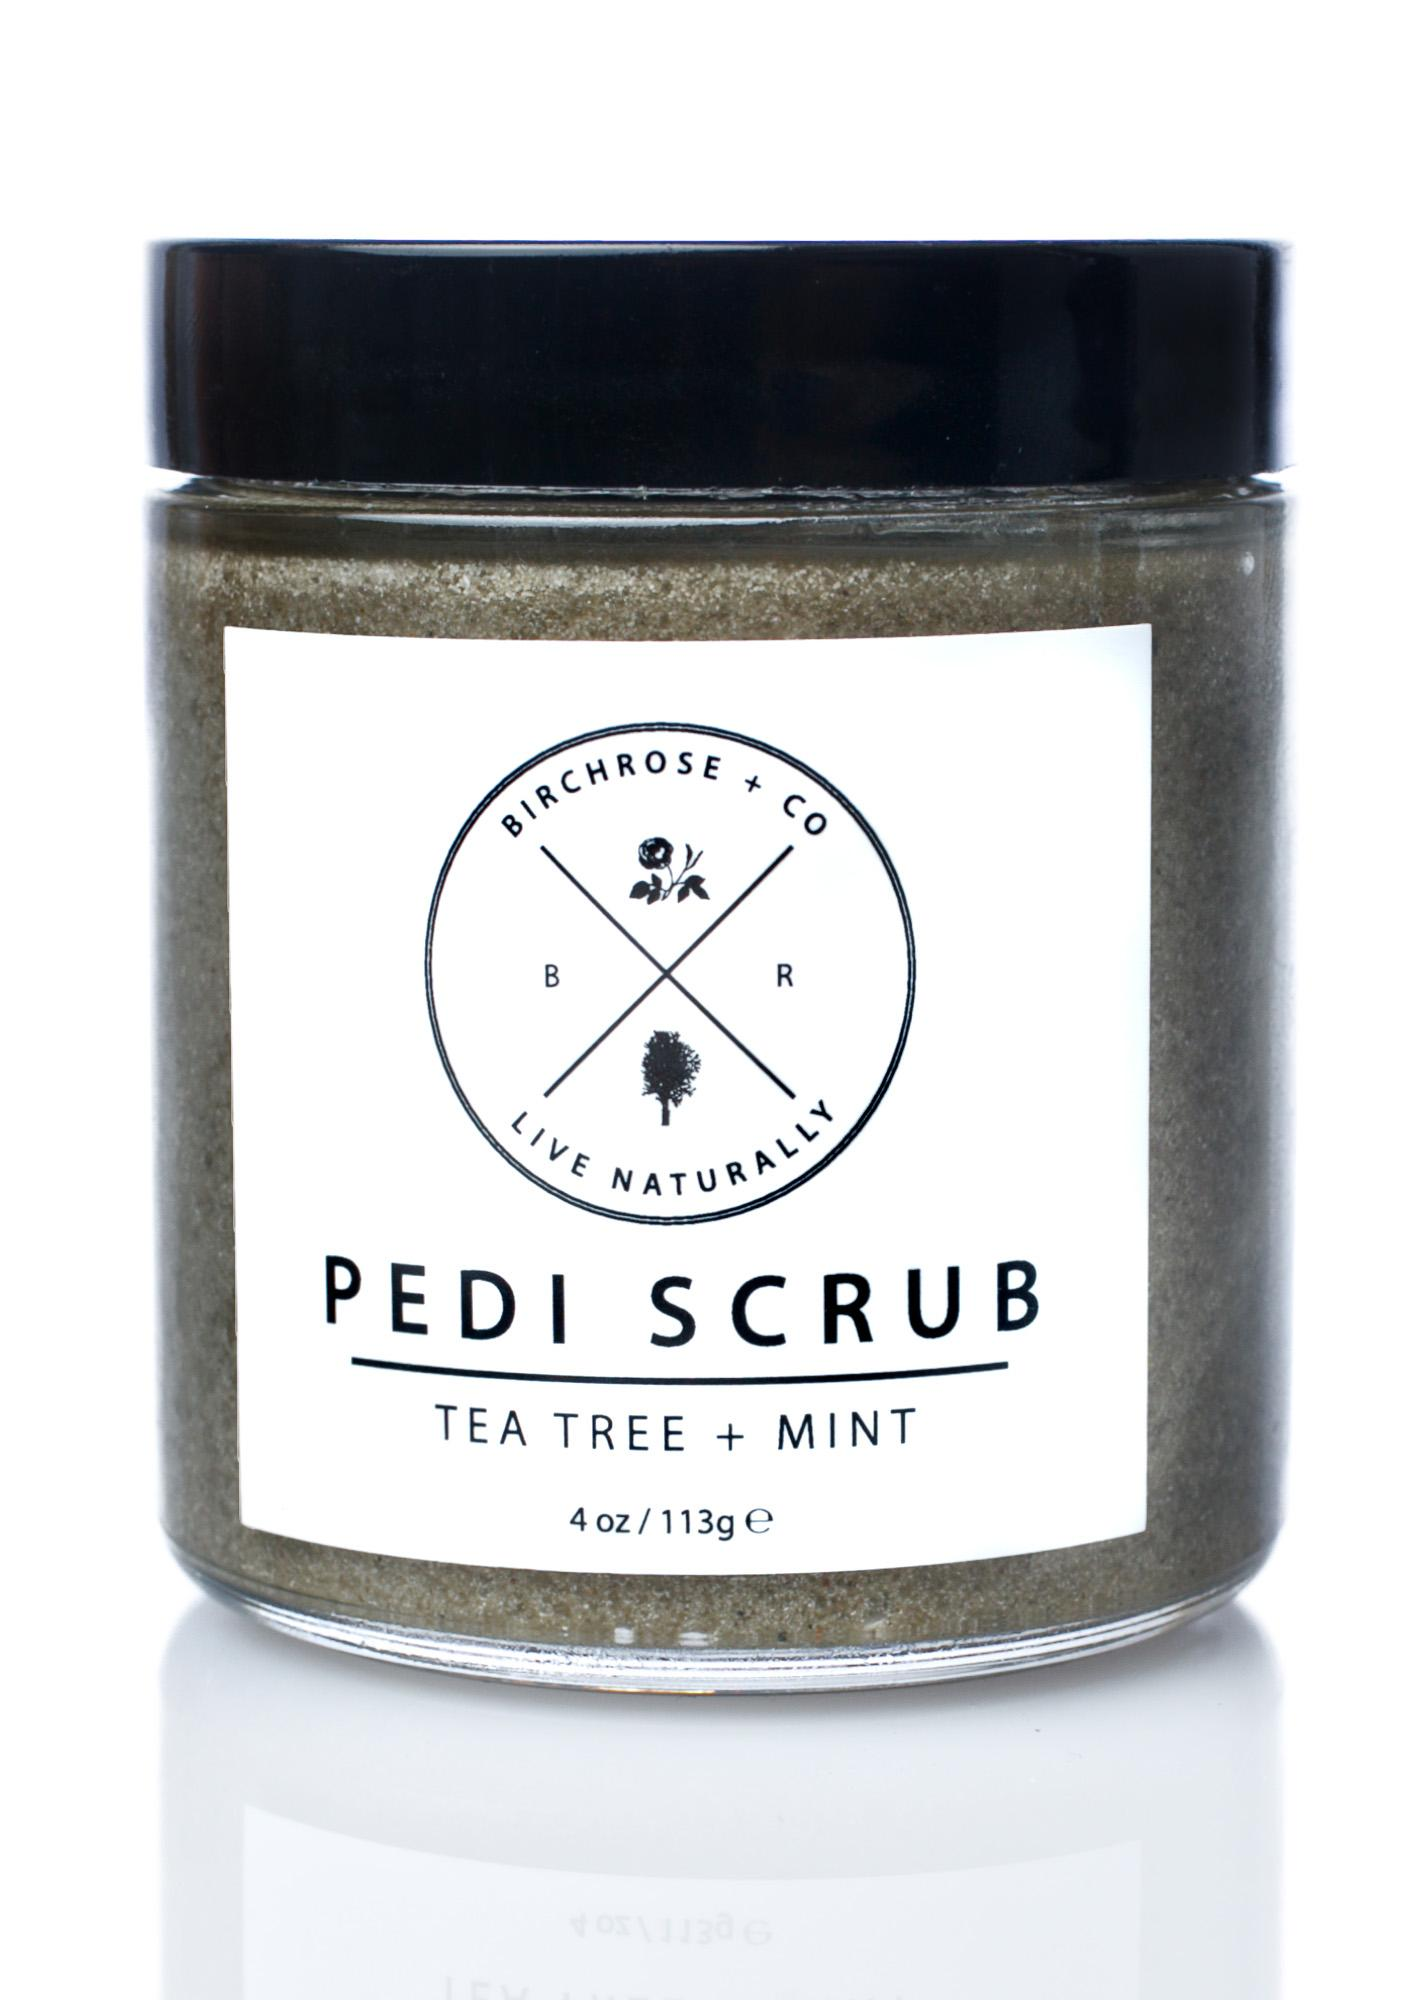 Birchrose + Co Tea Tree + Mint Pedi Scrub